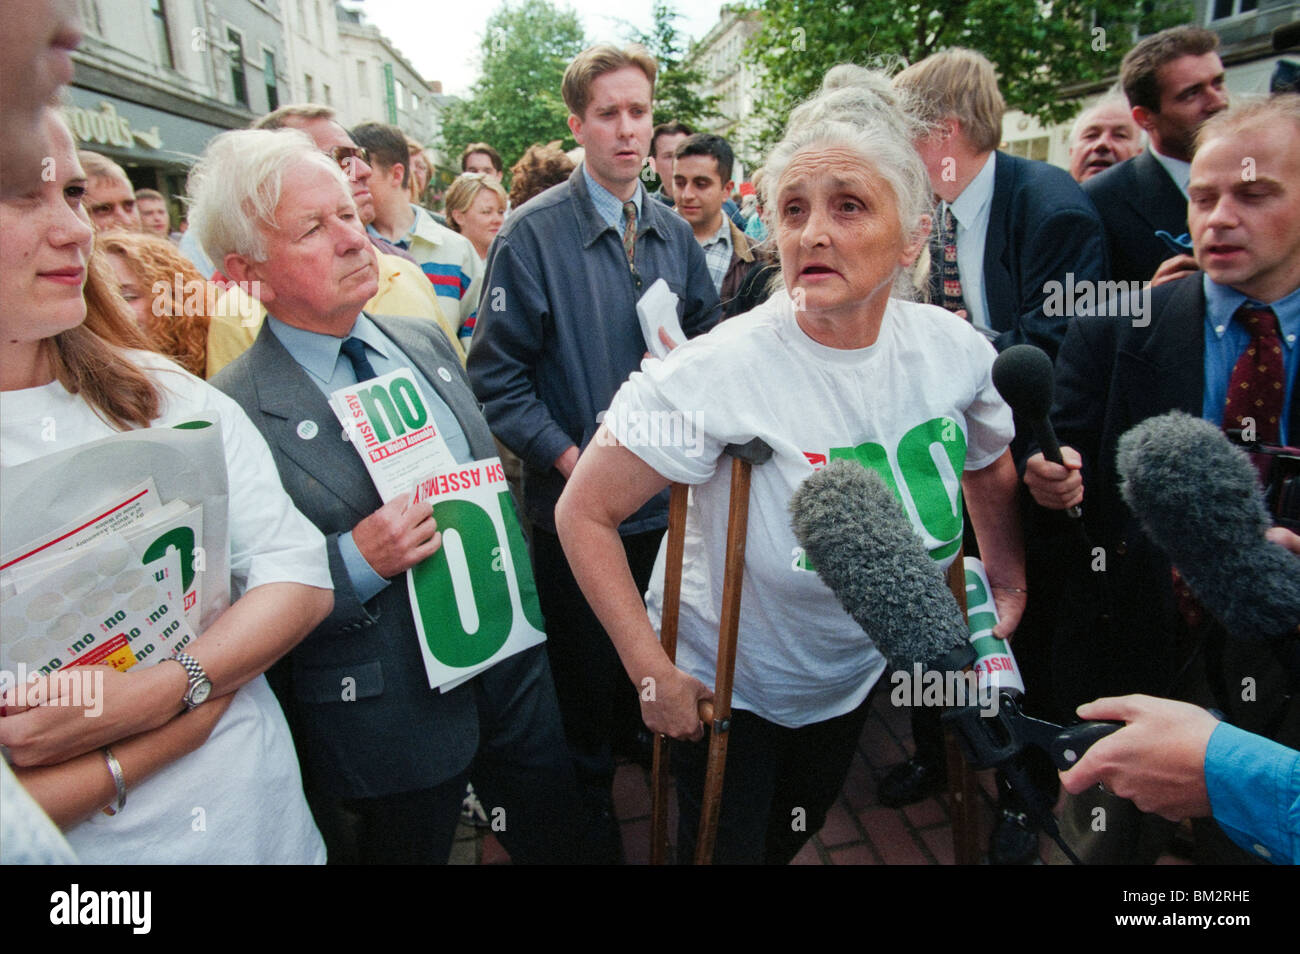 JUST SAY NO campaigners leafleting in Cardiff for their 1997 Referendum NO campaign against a National Assembly - Stock Image